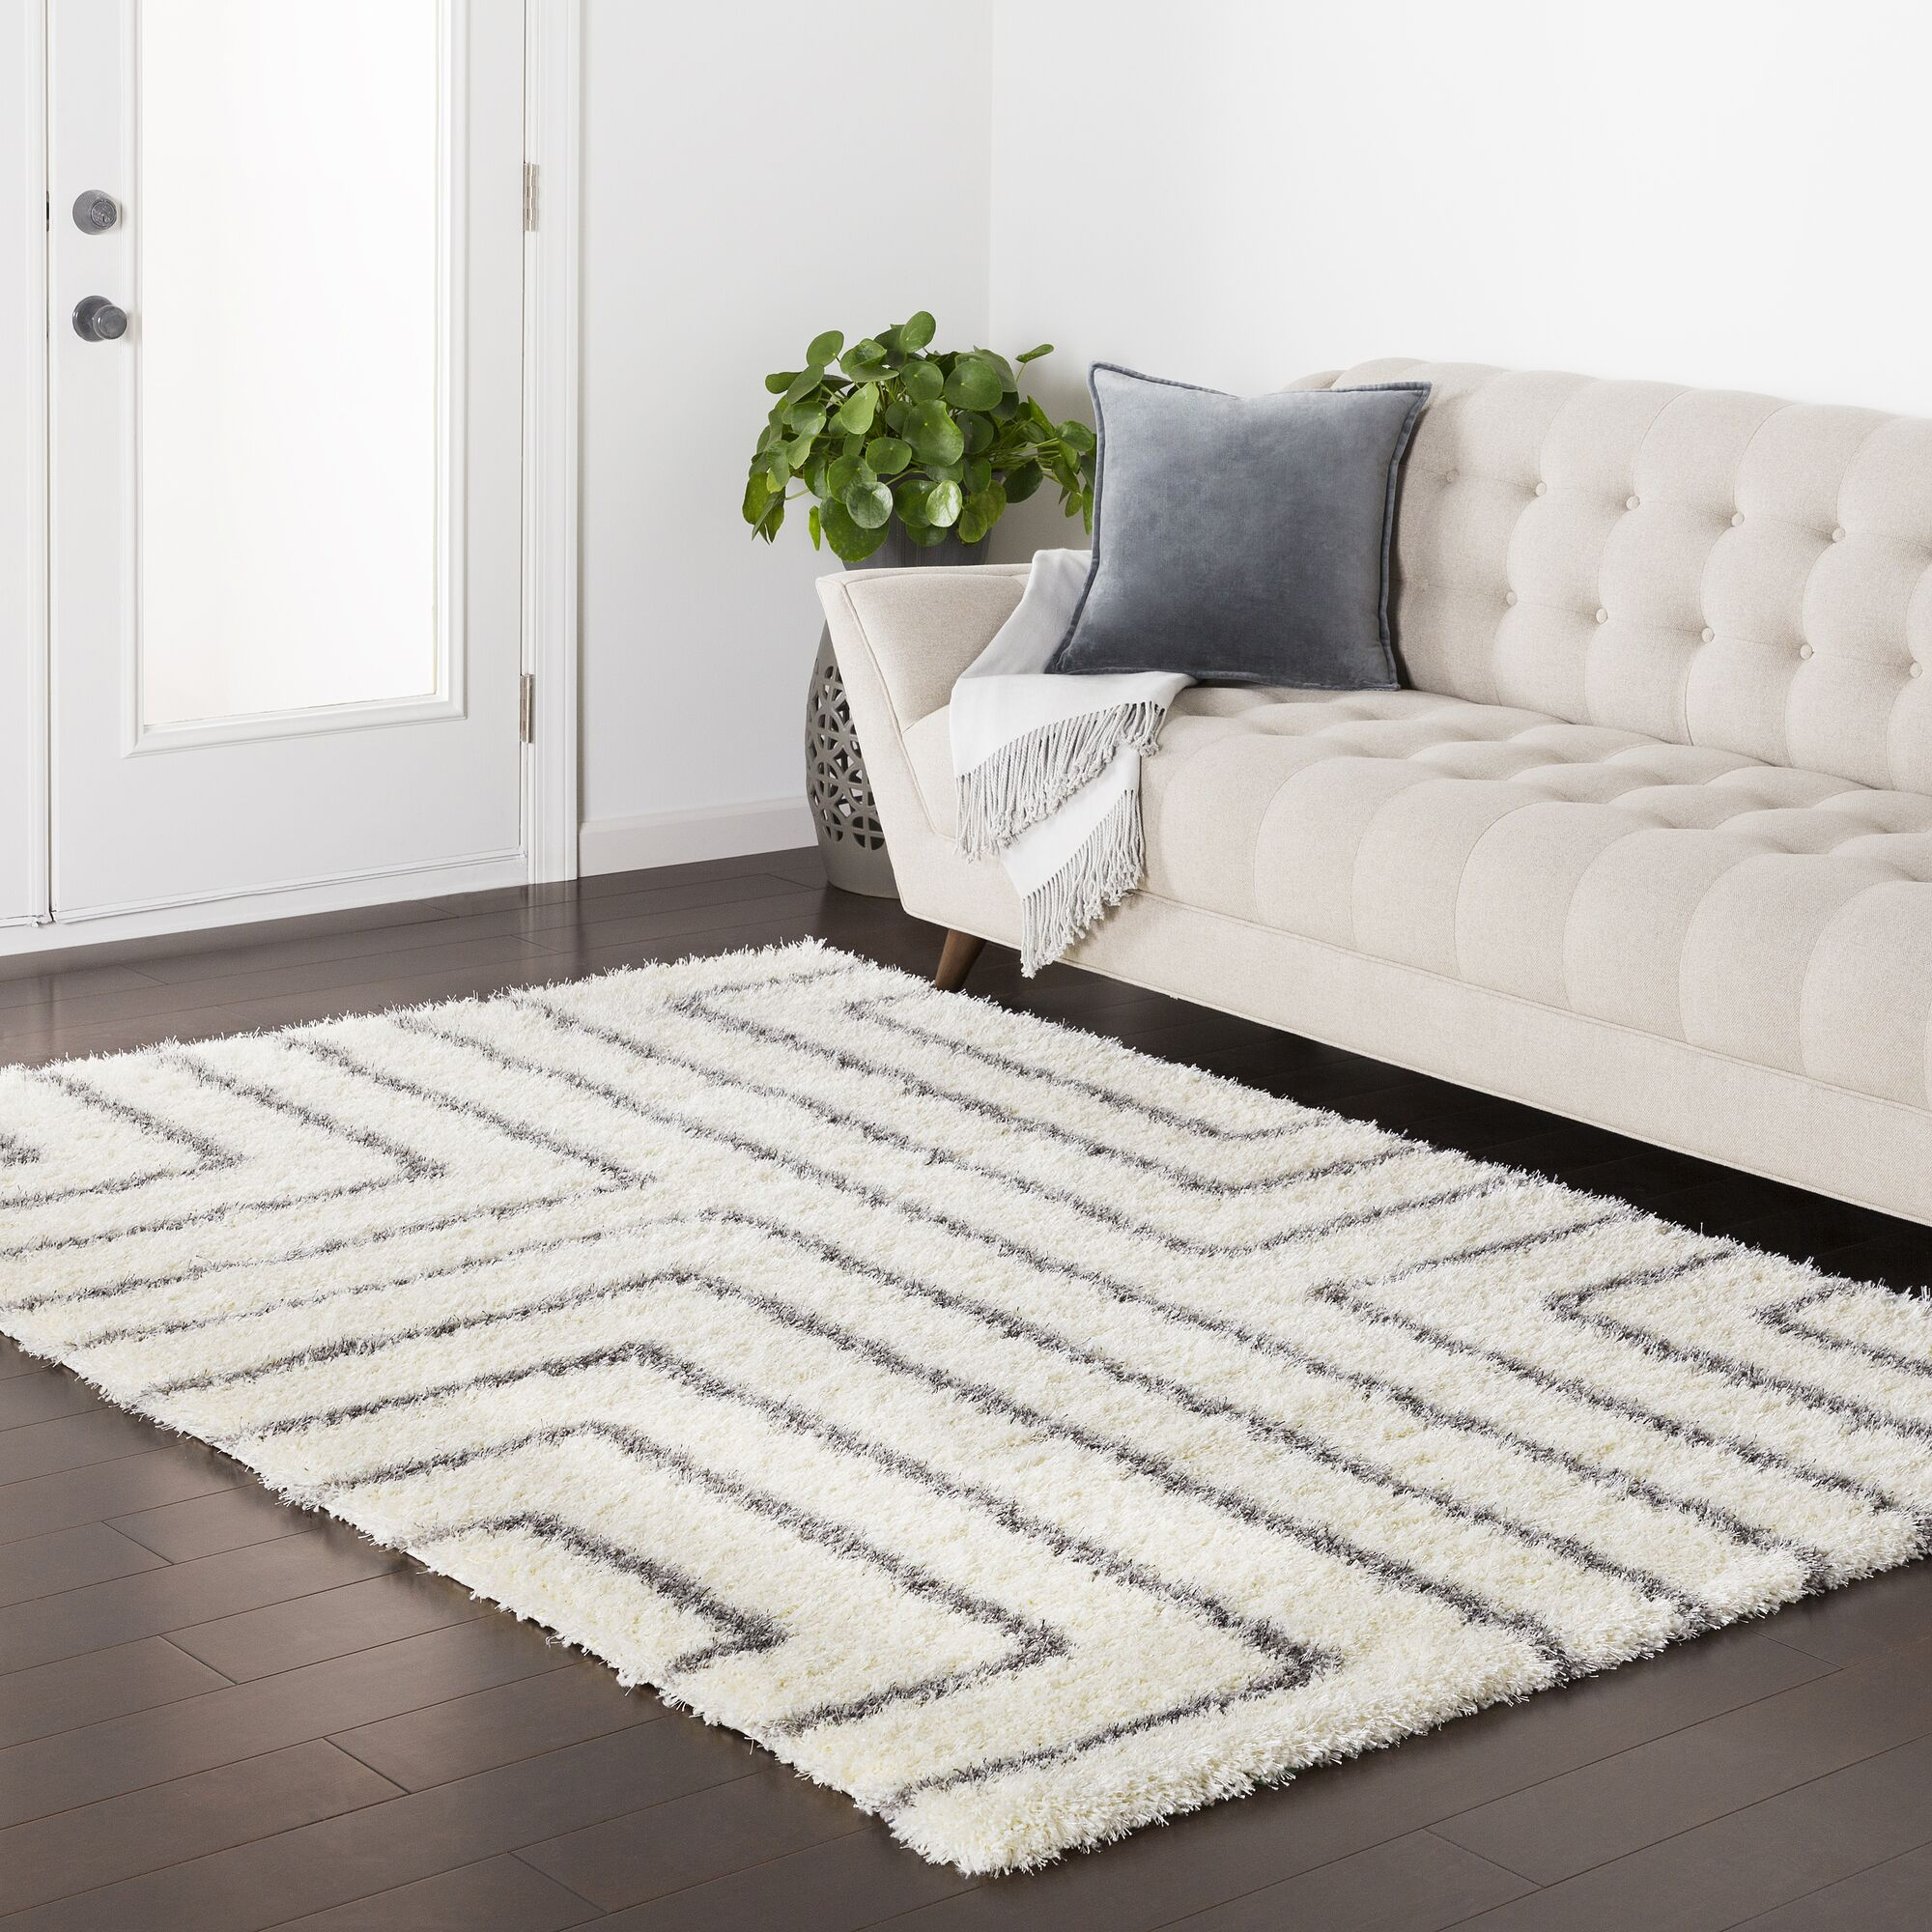 Red Hills Geometric Cream/Gray Area Rug Rug Size: 7'10